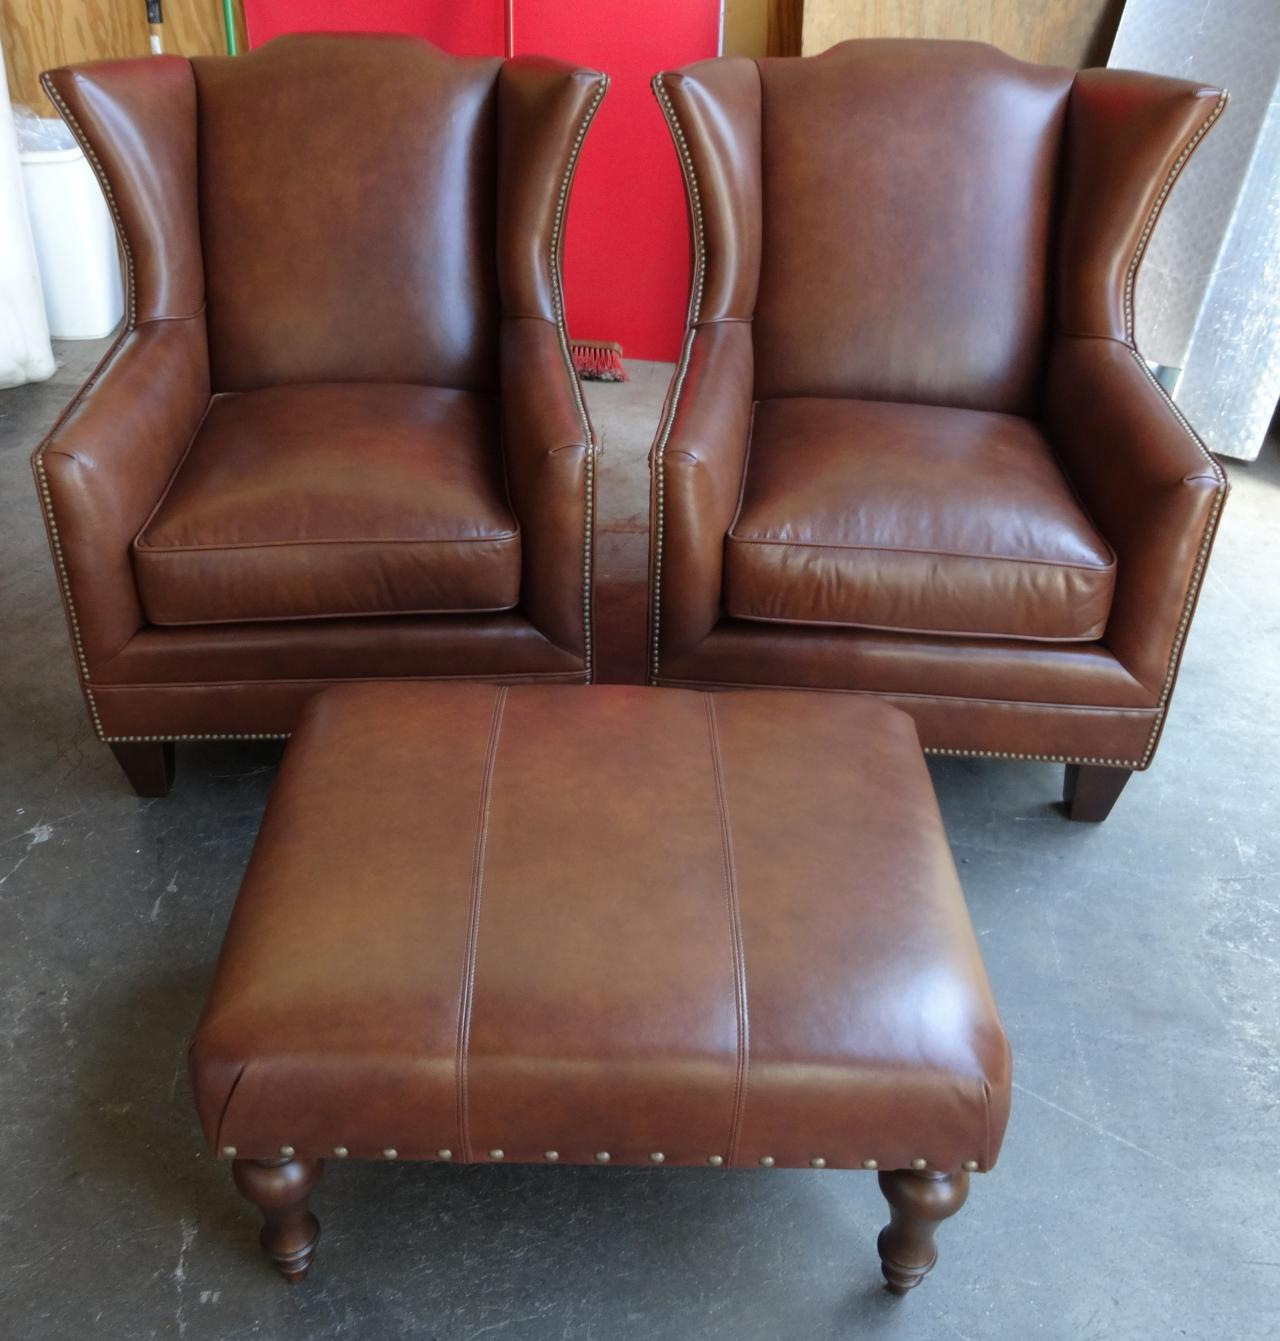 King Hickory Athens Chair Chairs Seating